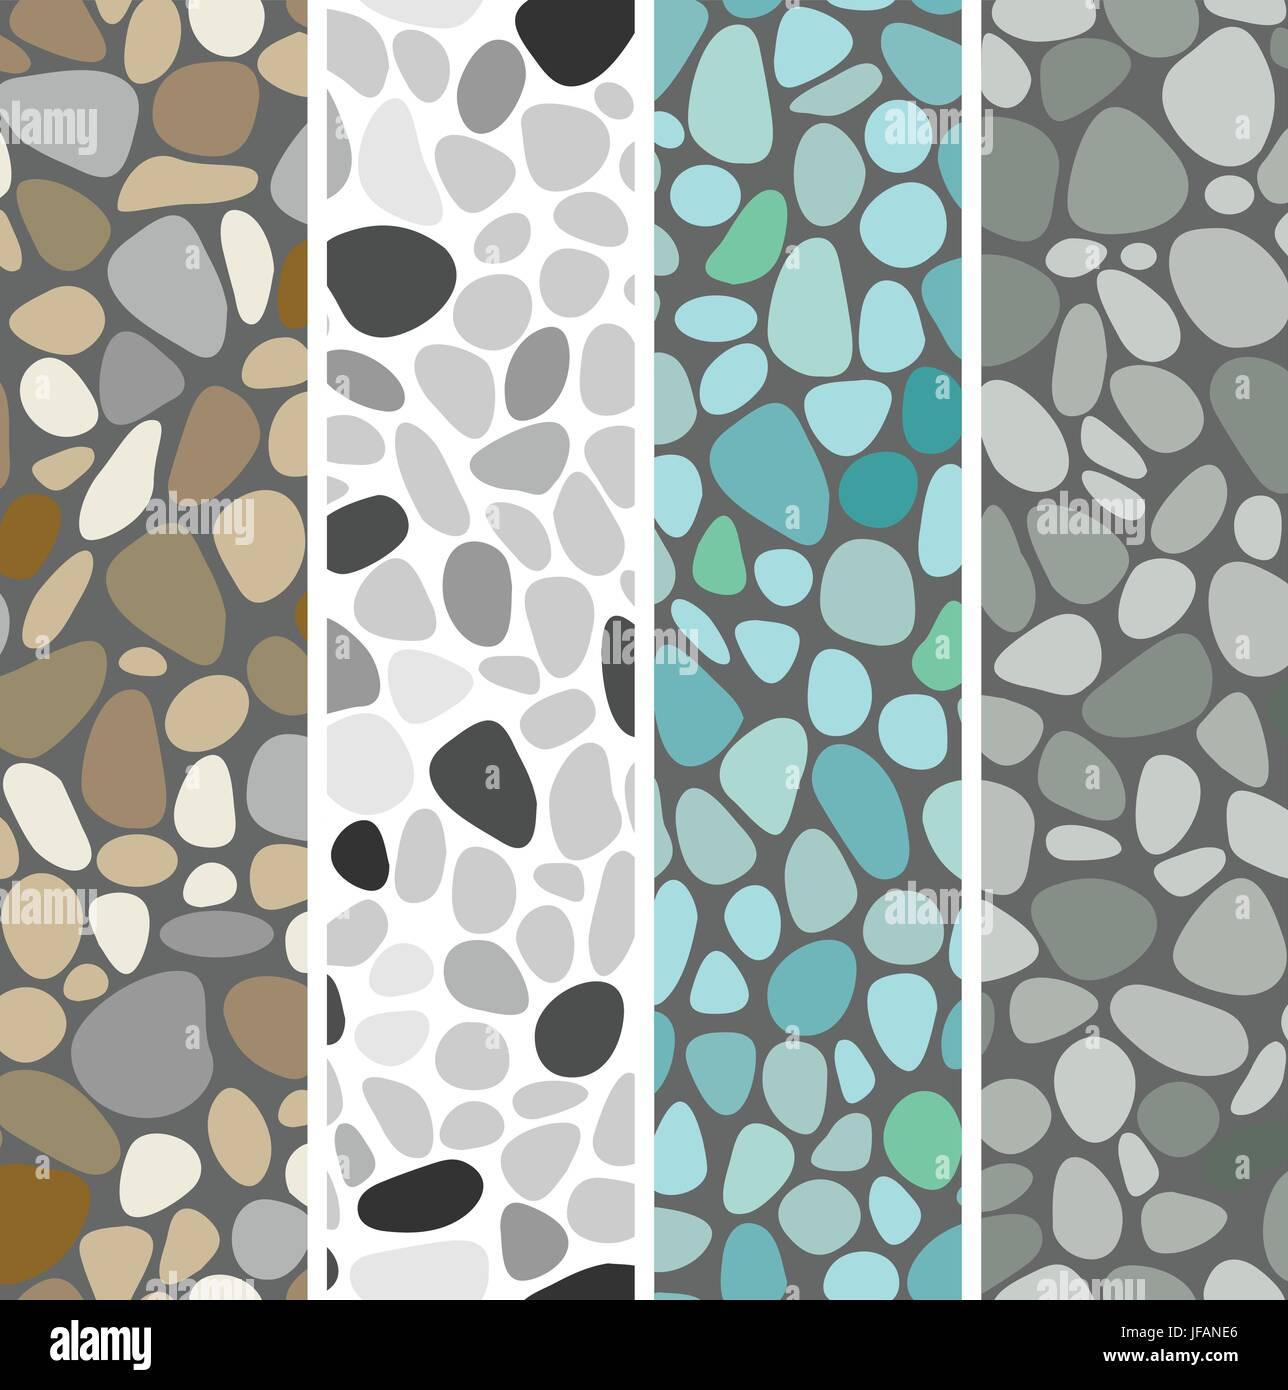 12'x12' rock / tile repeating seamless continuous pattern vector easy color edit (4 patterns) - Stock Image